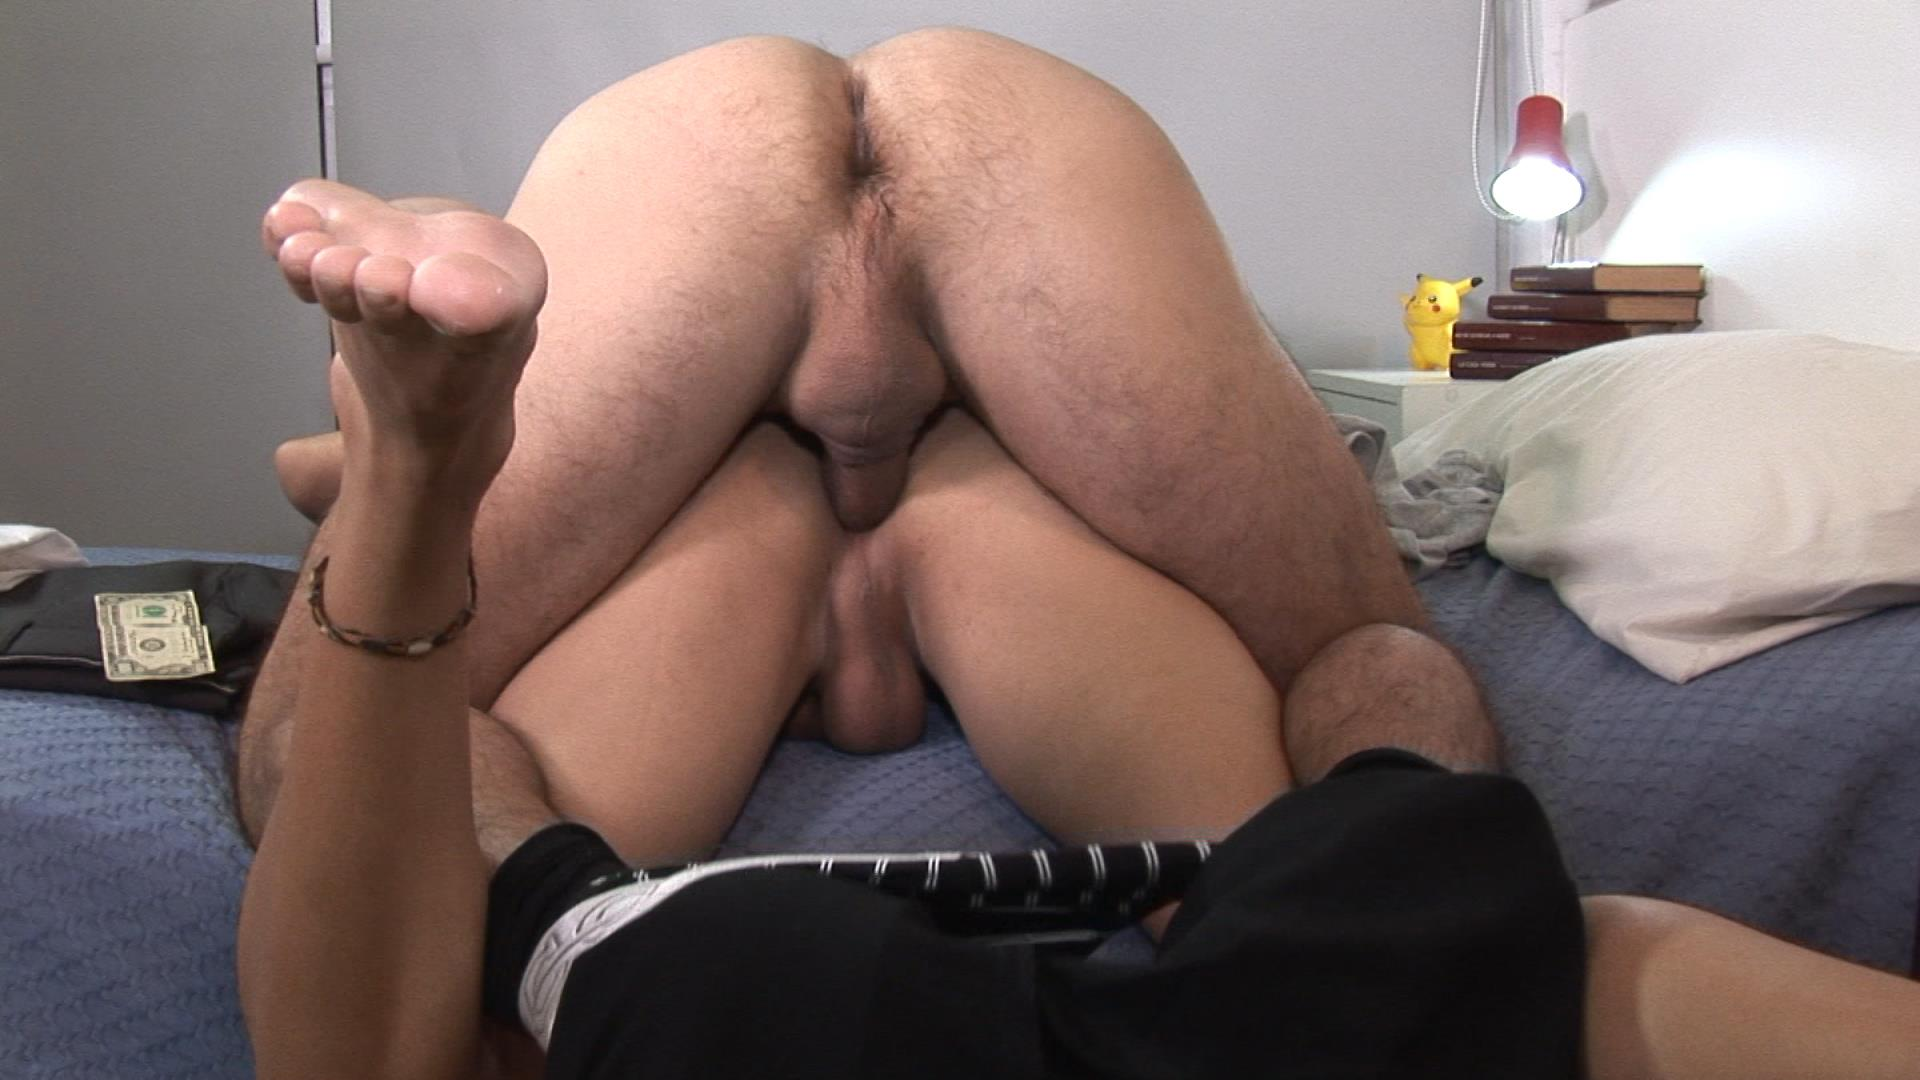 gay ebony guy stroking 14inch dick